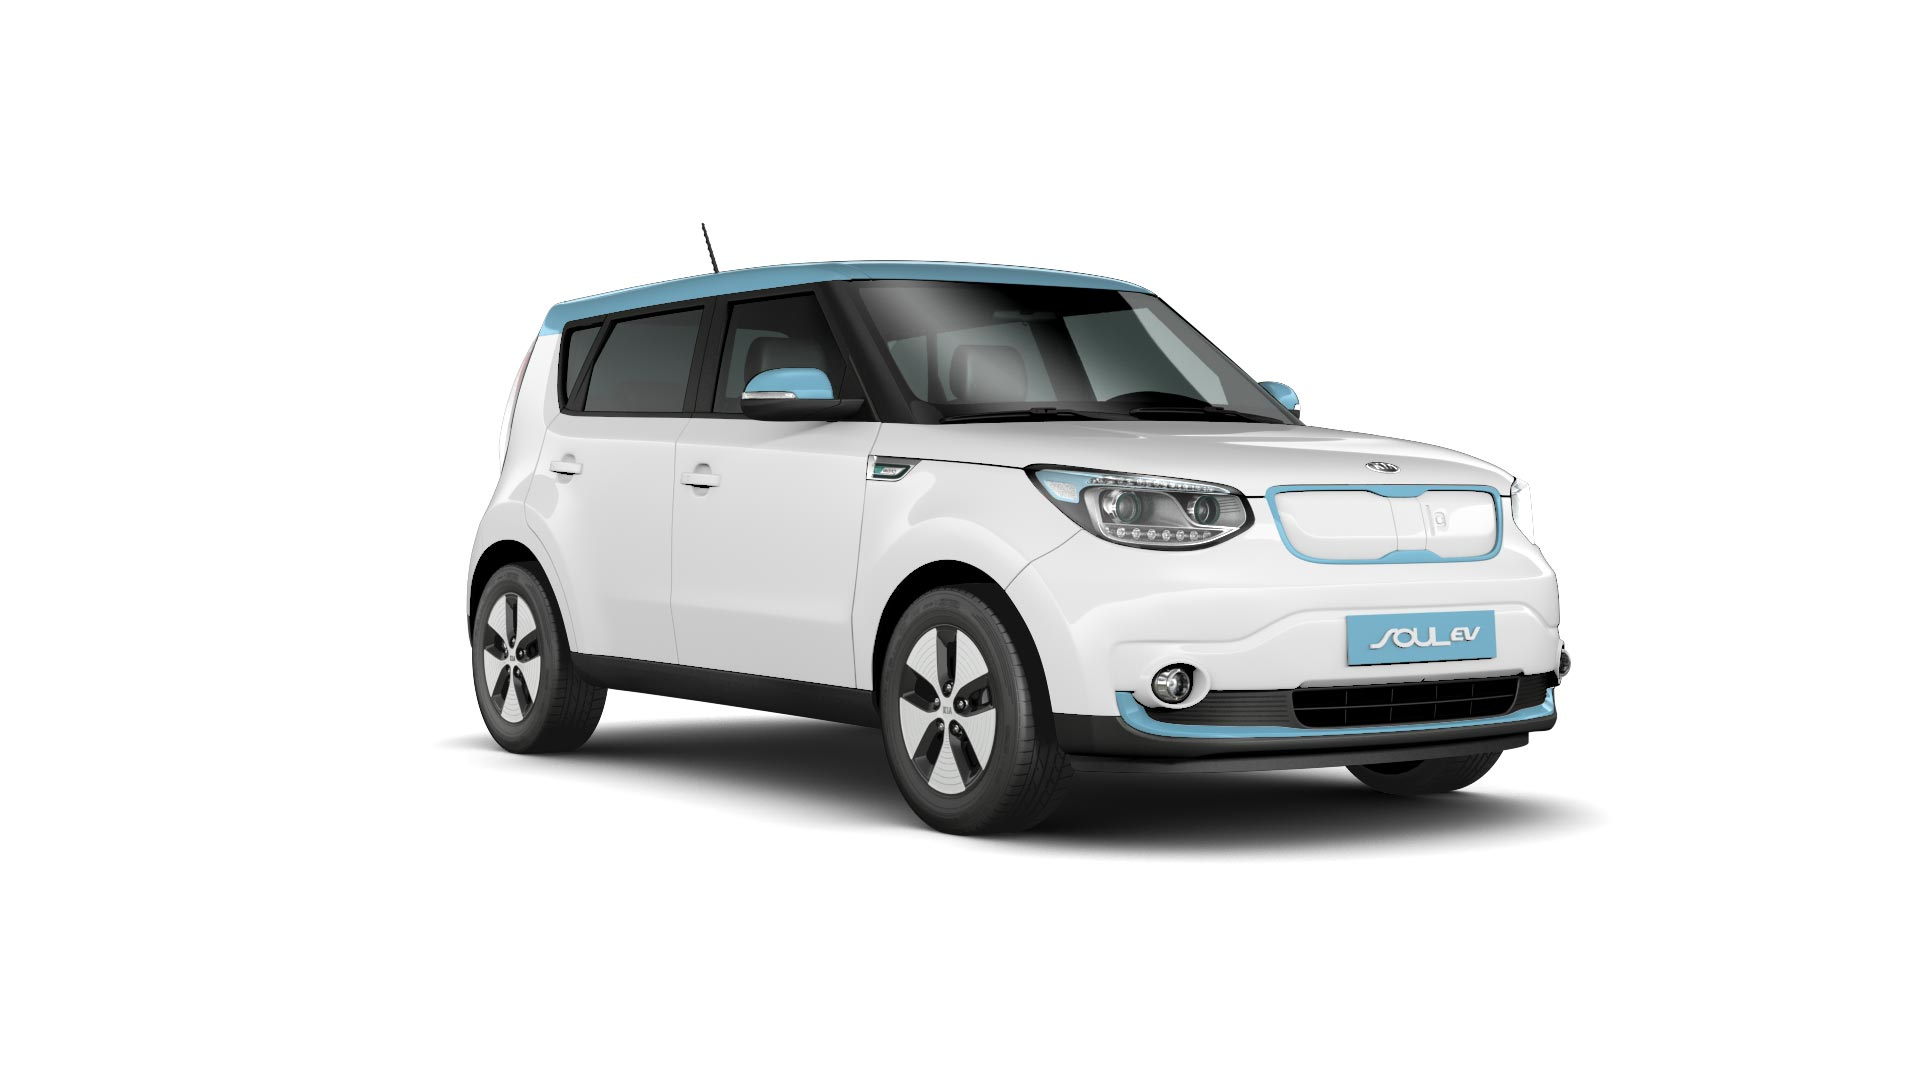 d couvrez le kia soul ev crossover urbain lectrique kia motors france. Black Bedroom Furniture Sets. Home Design Ideas